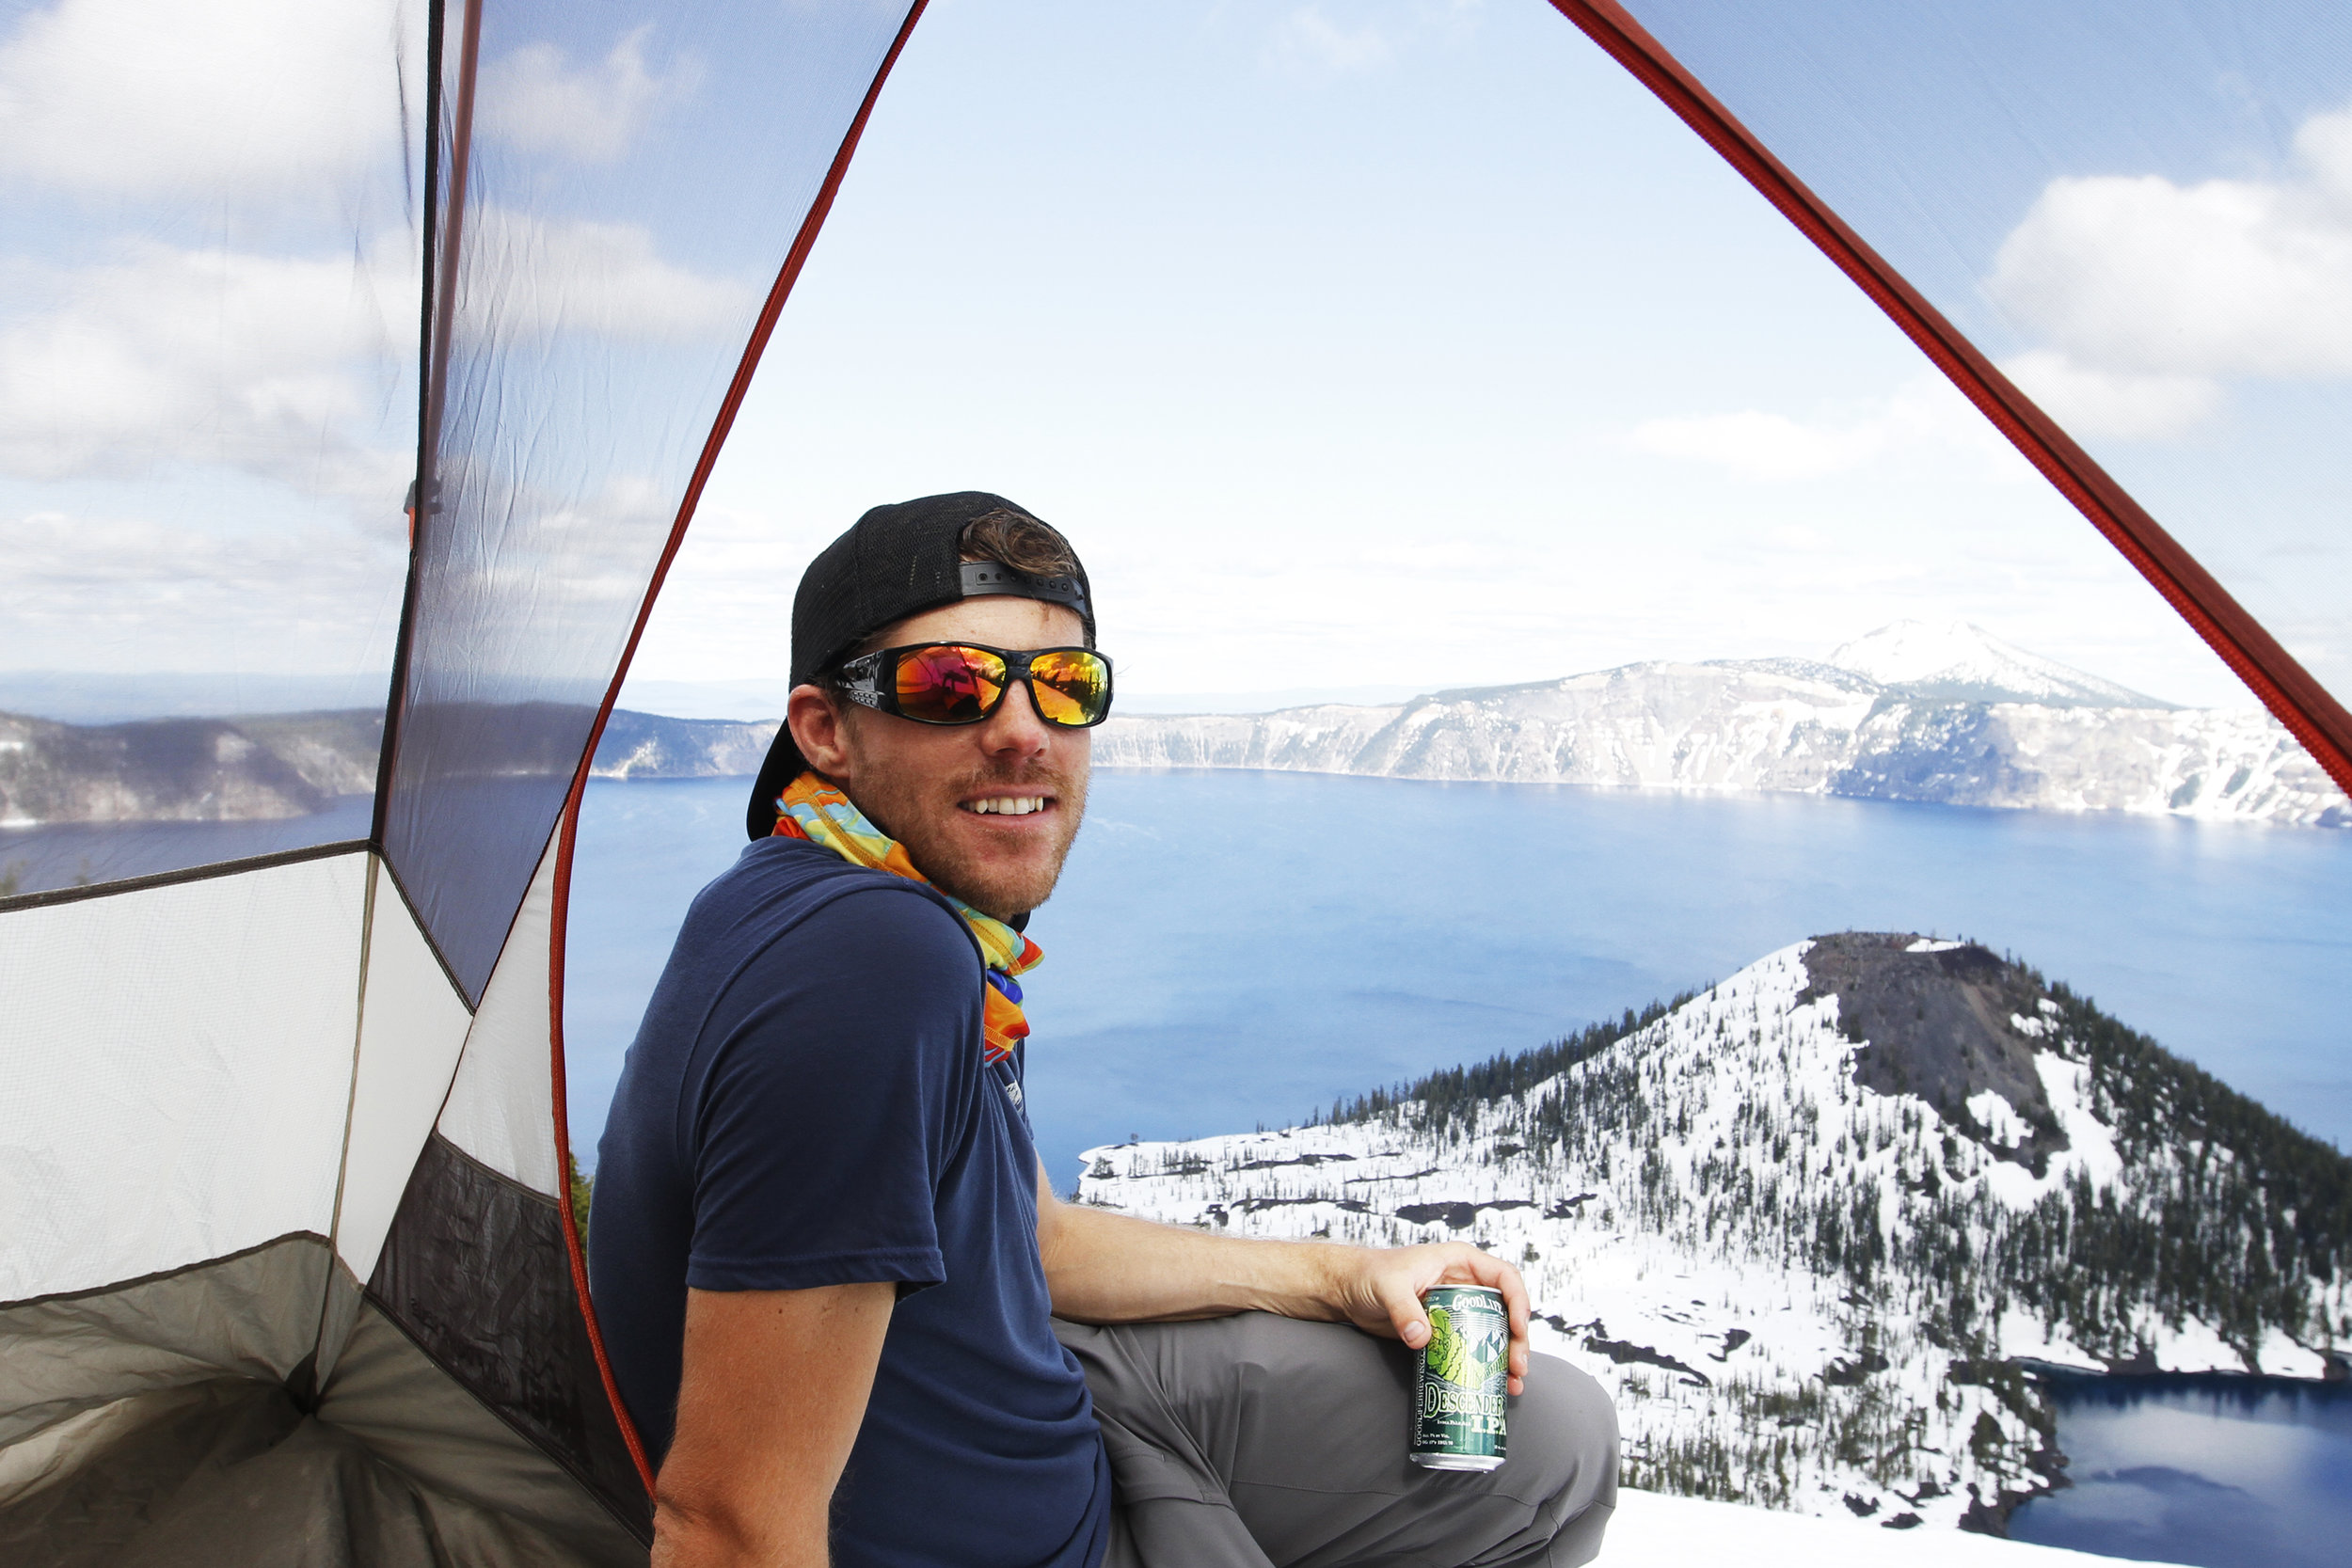 With our construction of our backcountry campsite complete, Jon enjoys a Descender IPA from Good Life Brewery.